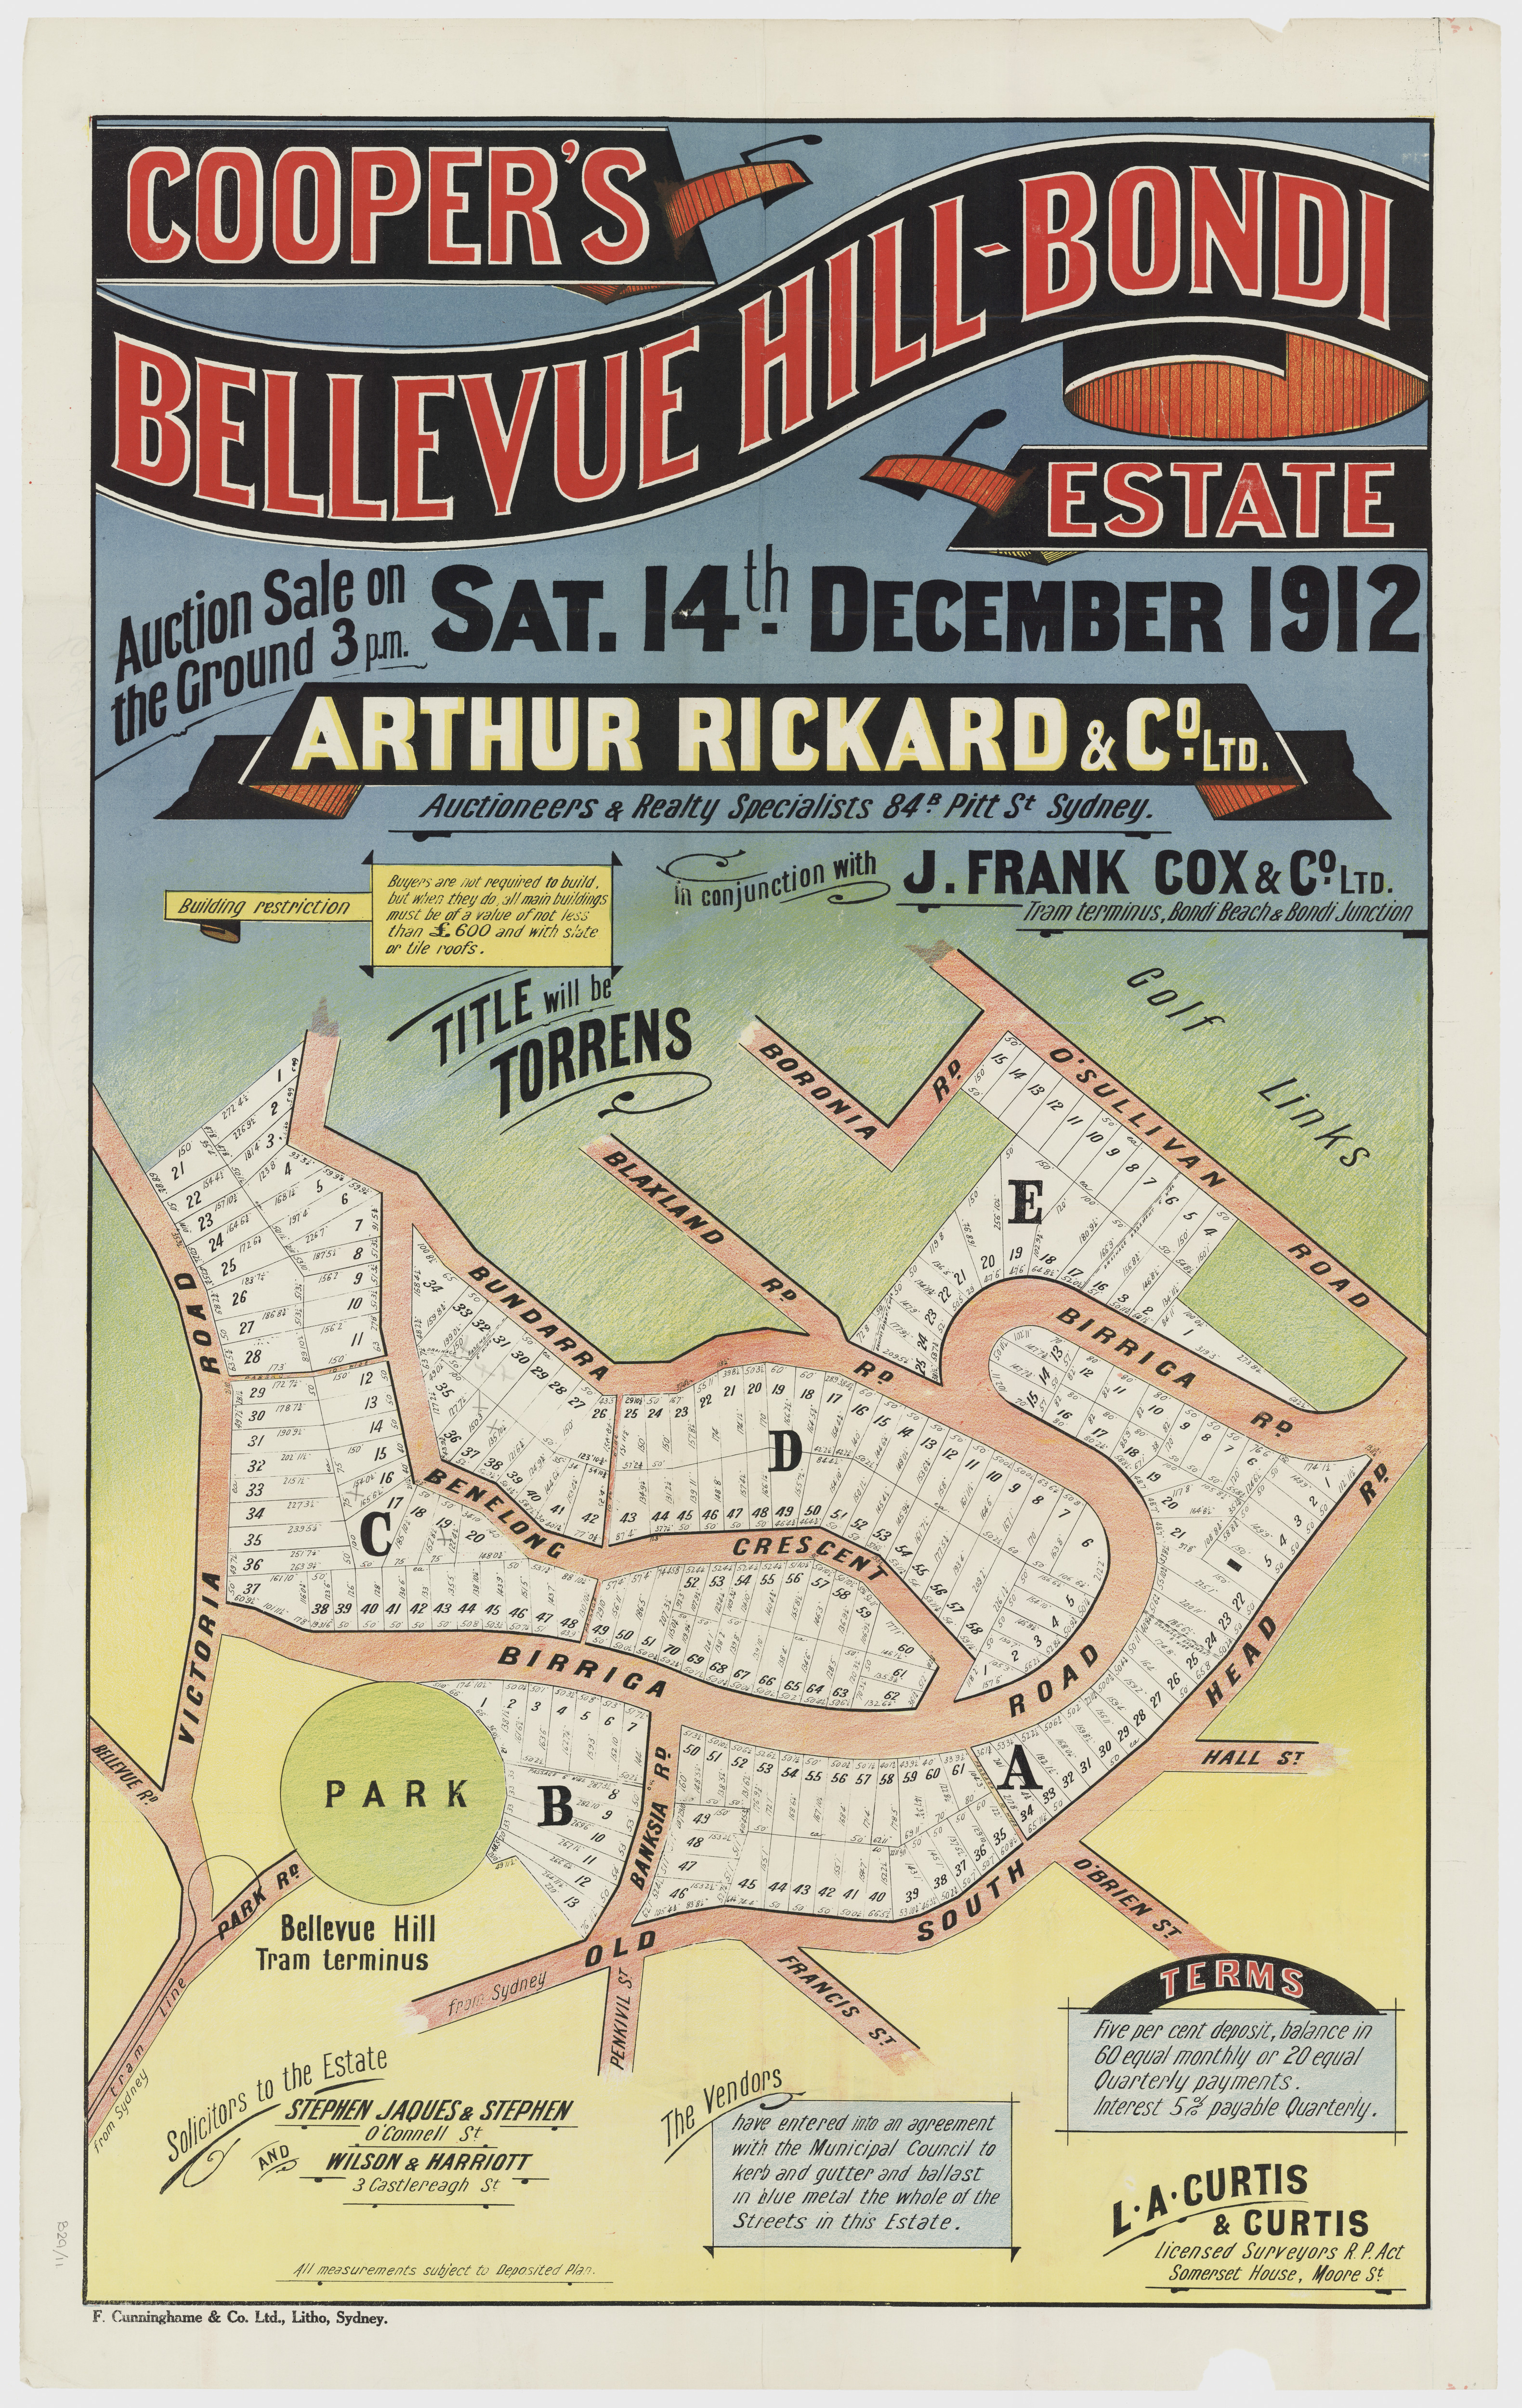 Sales plan for the first subdivision of the Cooper's Bellevue Hill-Bondi Estate offered for sale in December 1912. The 1912 release was centered on the newly constructed estate road named 'Birriga' – eventually the route taken by the extension of the Bellevue Hill tramway to Bondi Beach. Image: From the collections of the State Library of New South Wales  c028640011